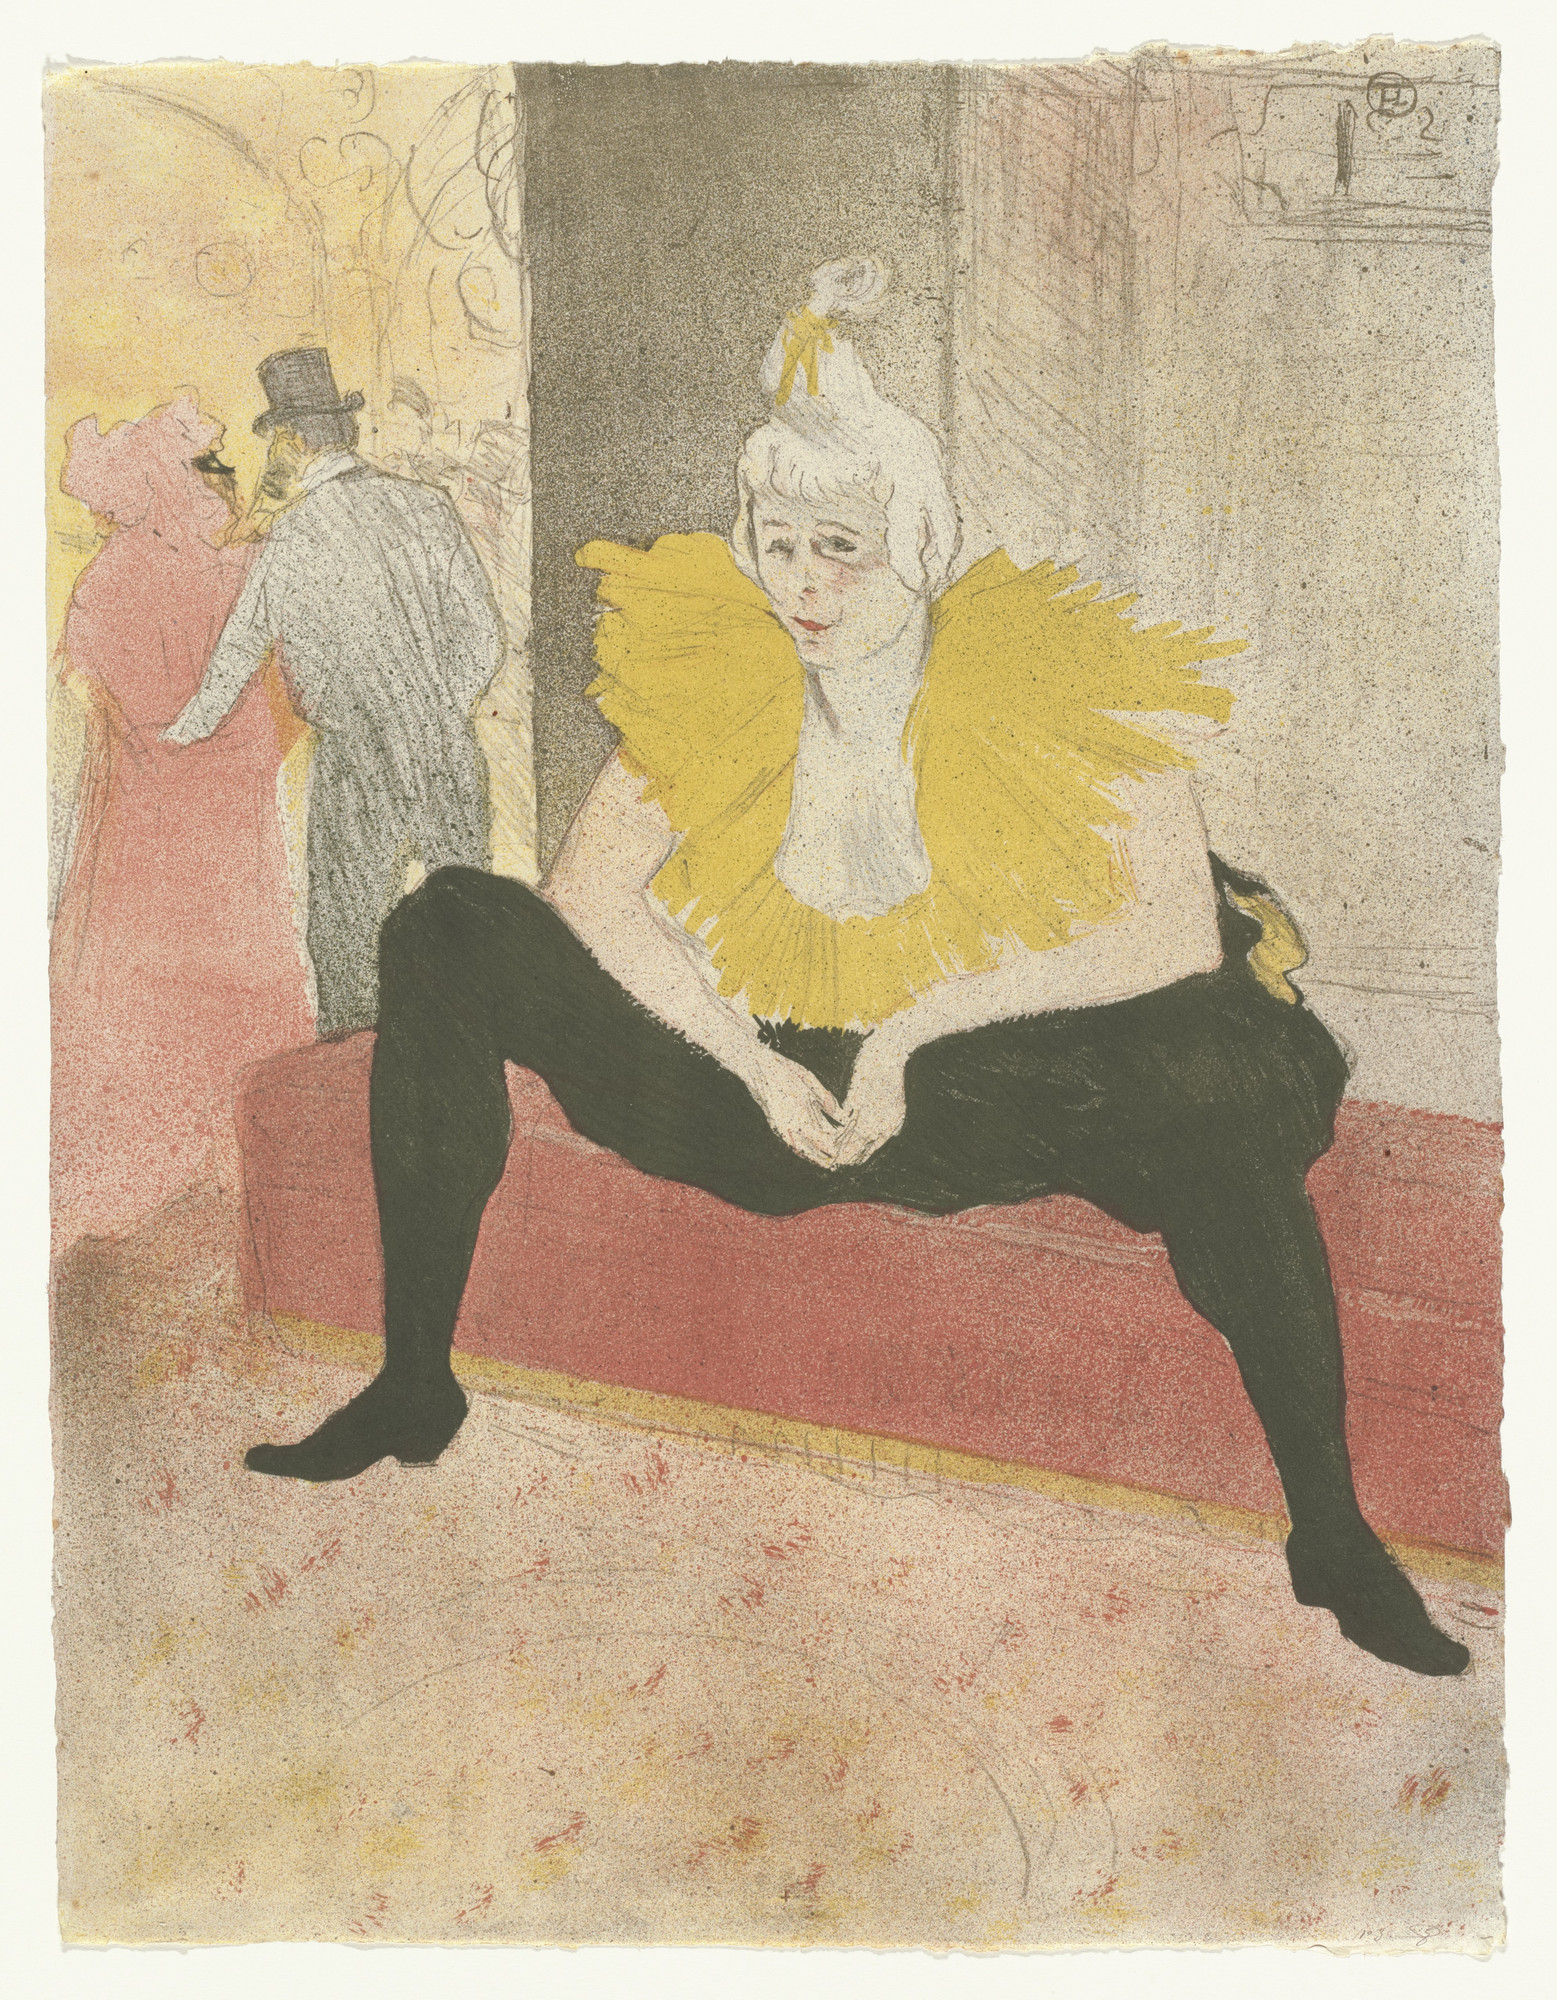 Henri de Toulouse-Lautrec. Mademoiselle Cha-u-kao, The Seated Clowness (Mademoiselle Cha-u-kao, La Clownesse assise) from Elles. 1896